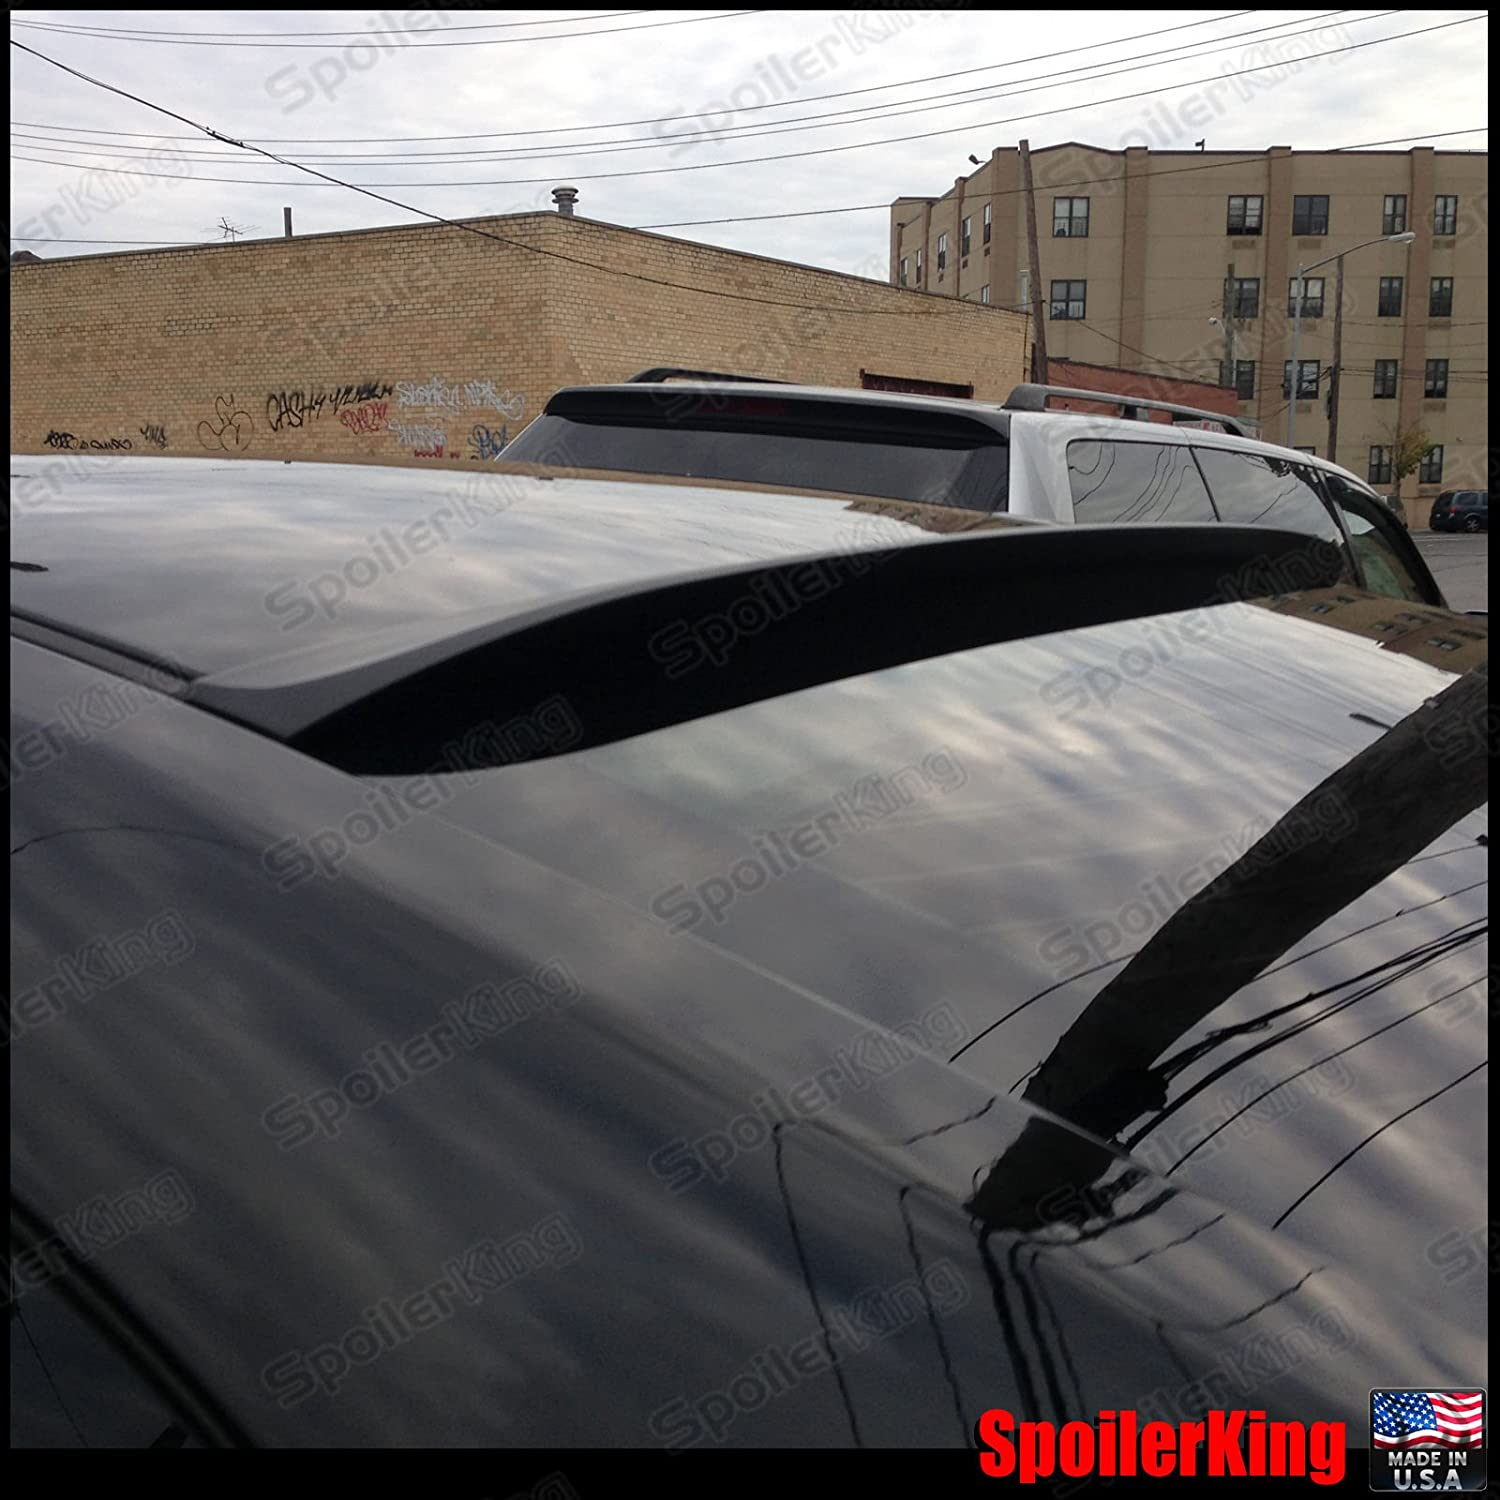 Spoiler King Roof Spoiler Compatible with Nissan Altima 4dr 284R